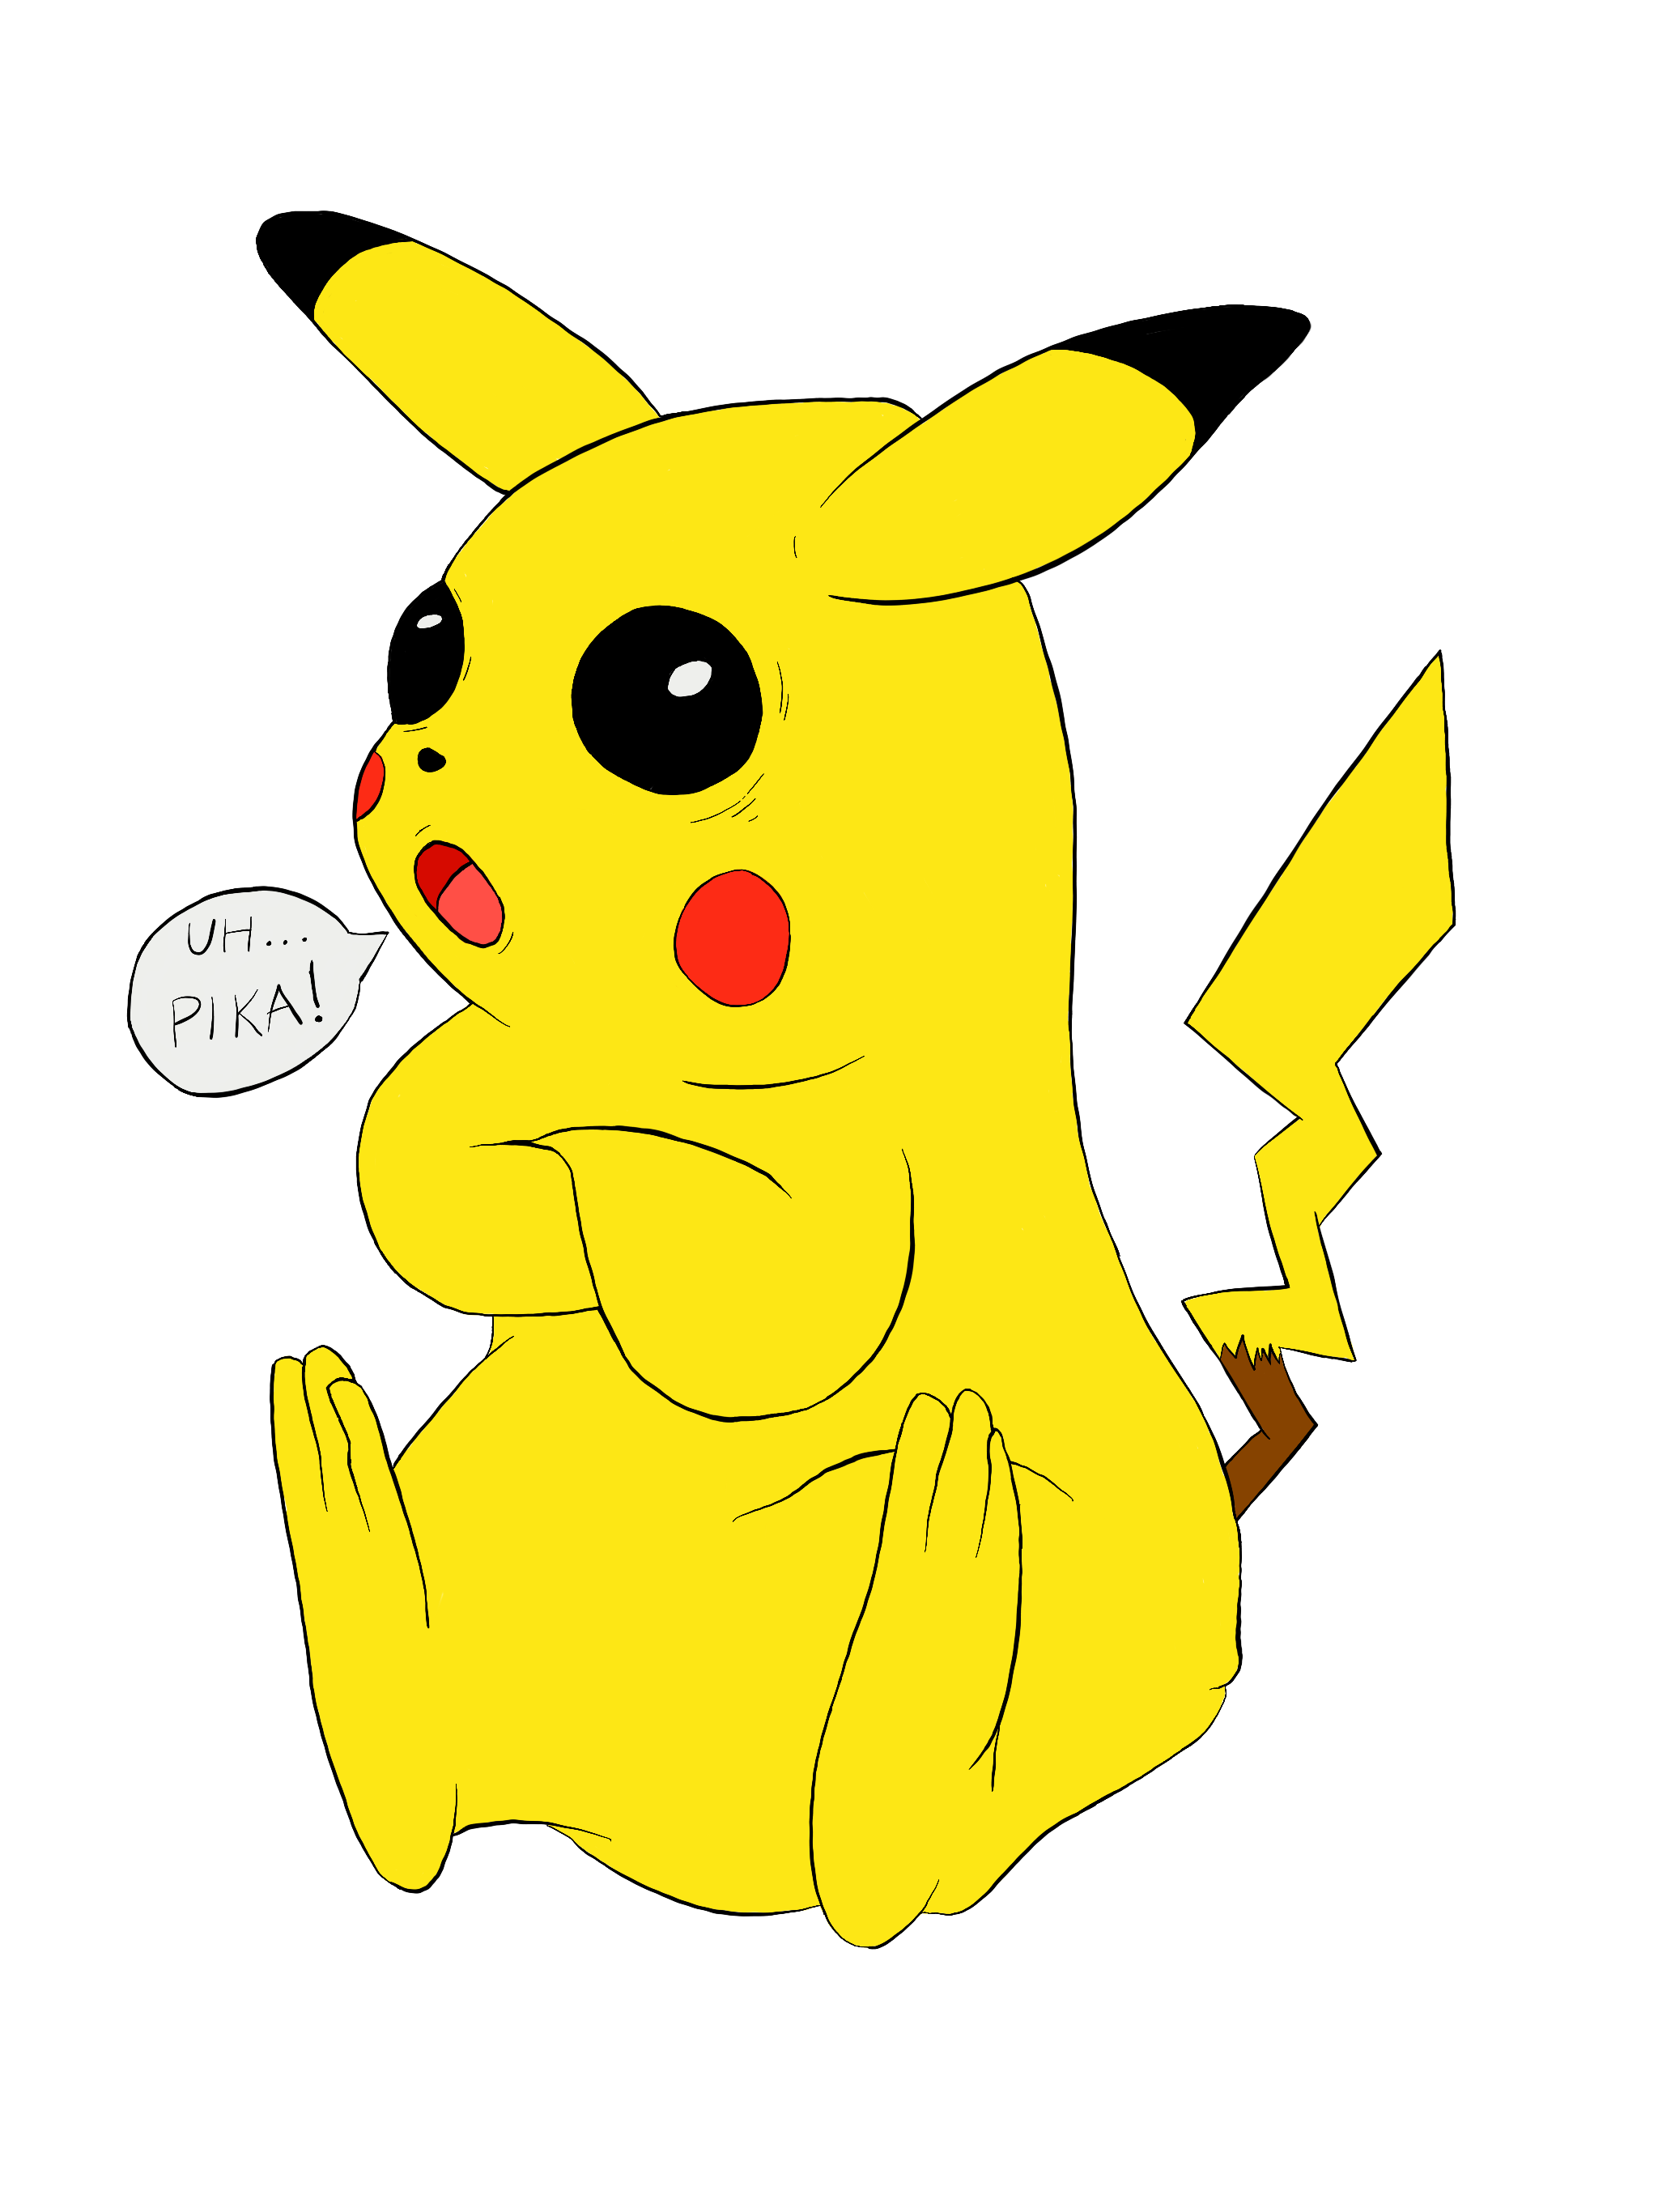 Drawing pikachu bydood pikachu thecheapjerseys Image collections